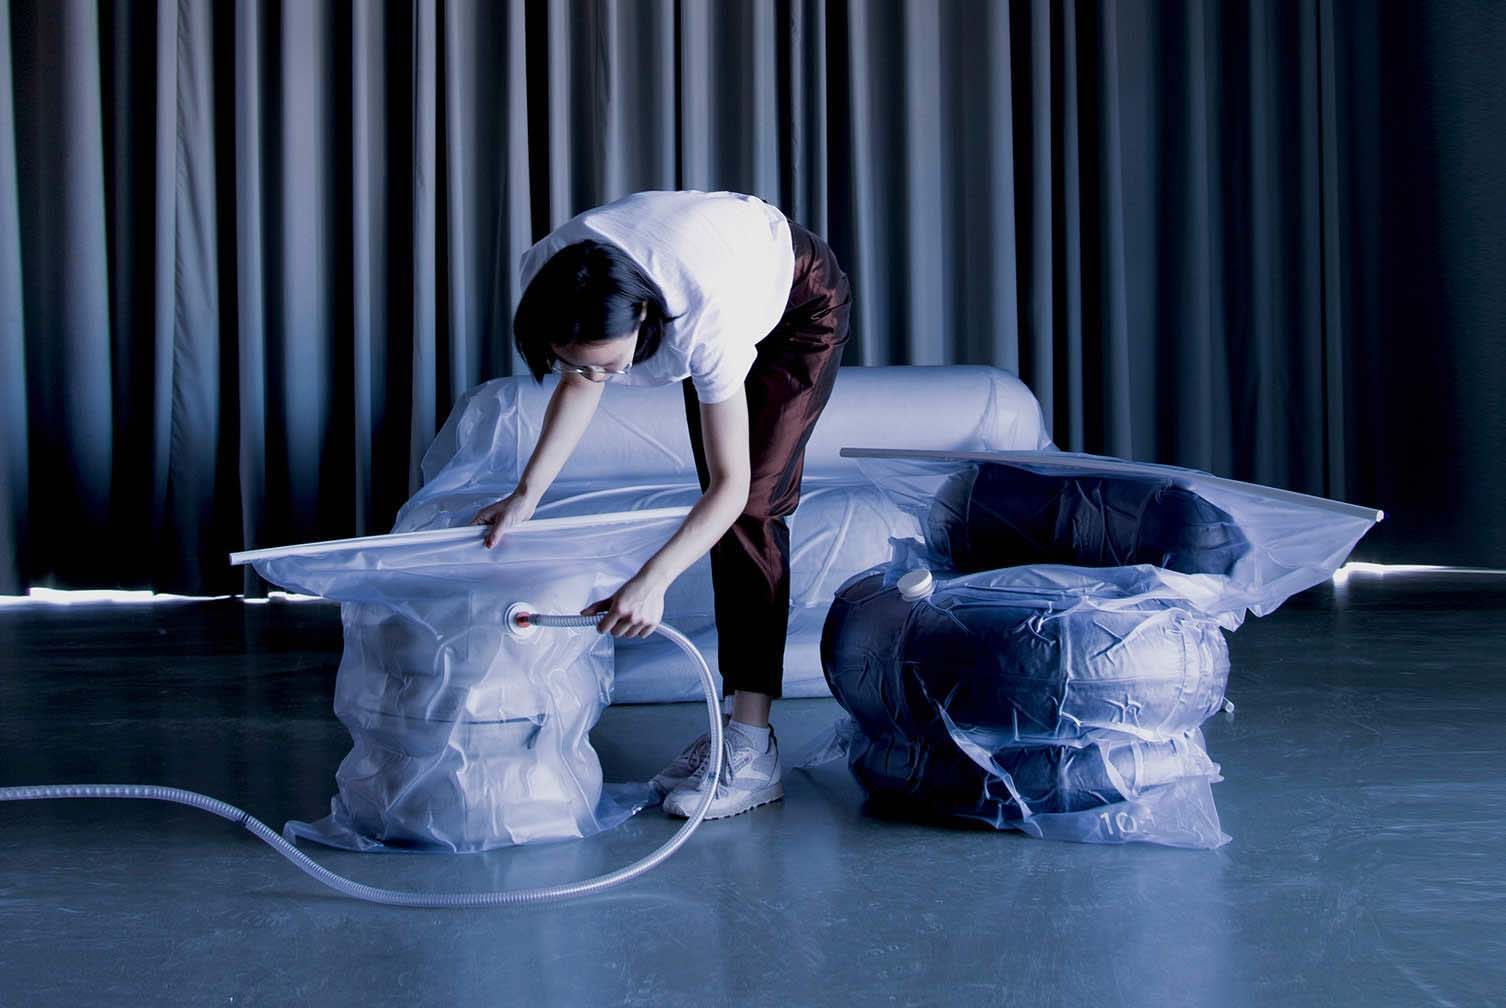 10:1 Compressible Furniture by Christian Hammer Juhl is Winner in Furniture, Decorative Items and Homeware Design Category, 2017 – 2018.